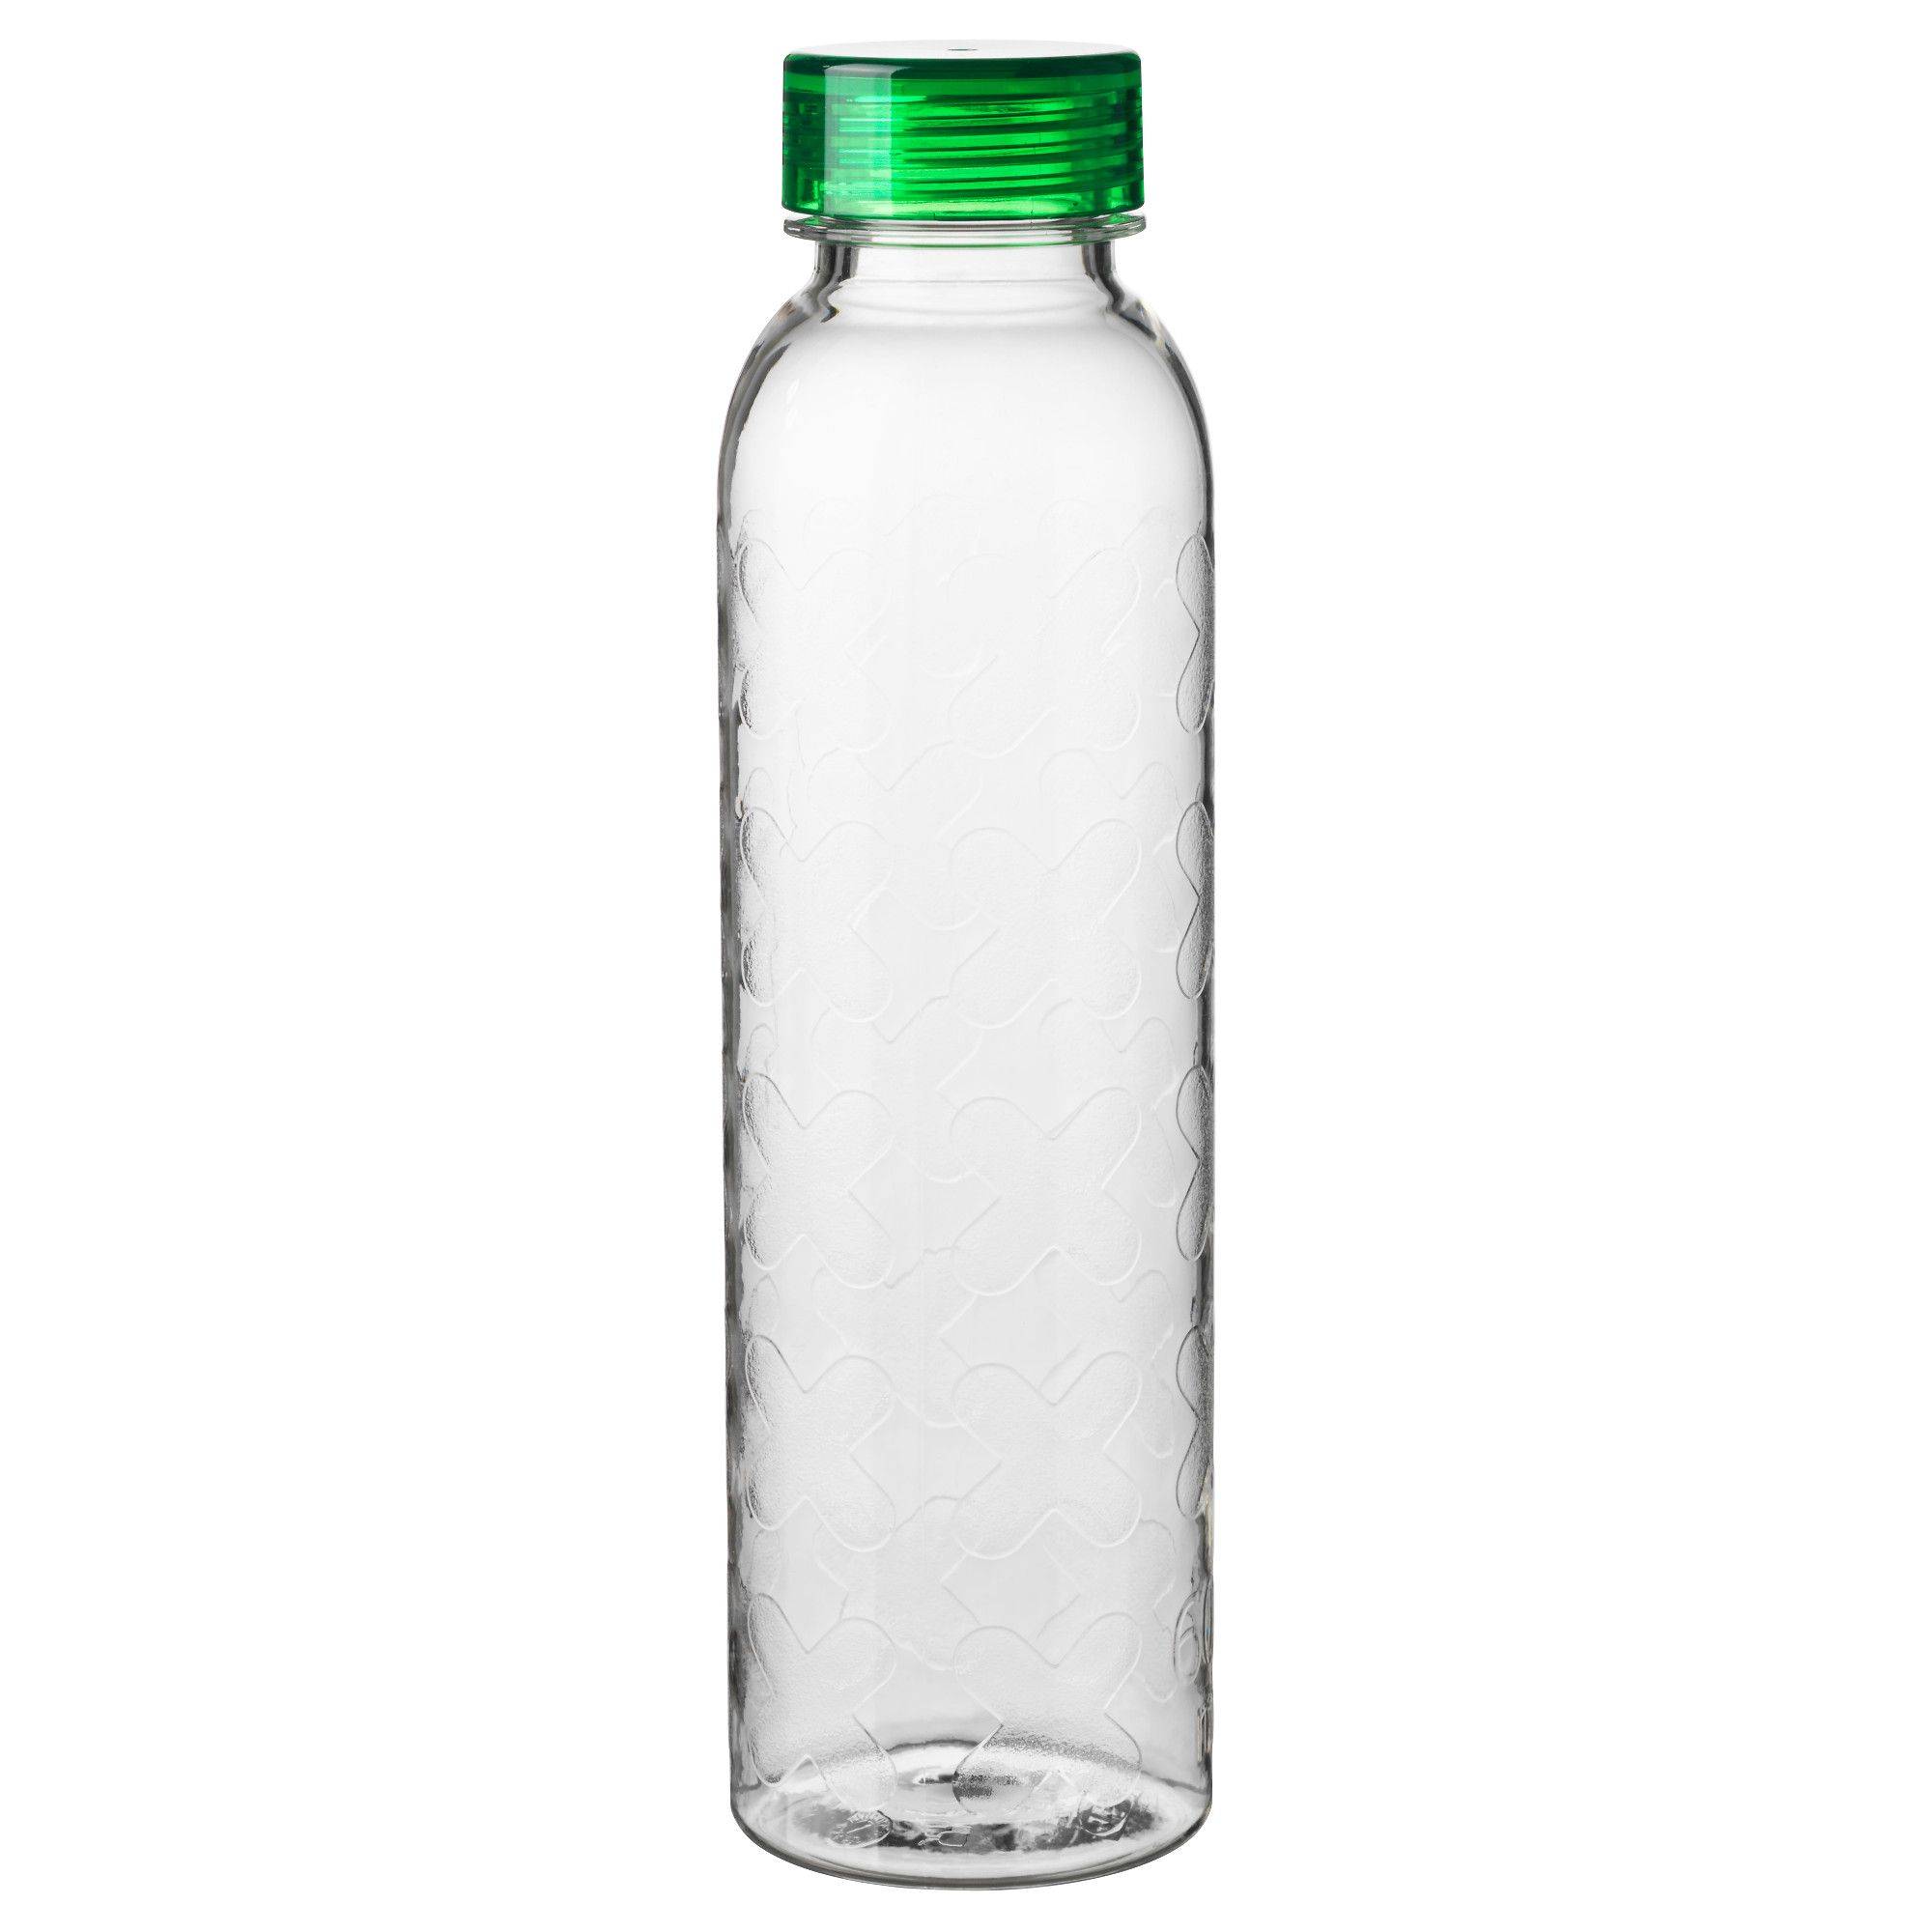 ikea behllare water bottle you dont risk any spillage since the - Ikea Lebensmittelbehlter